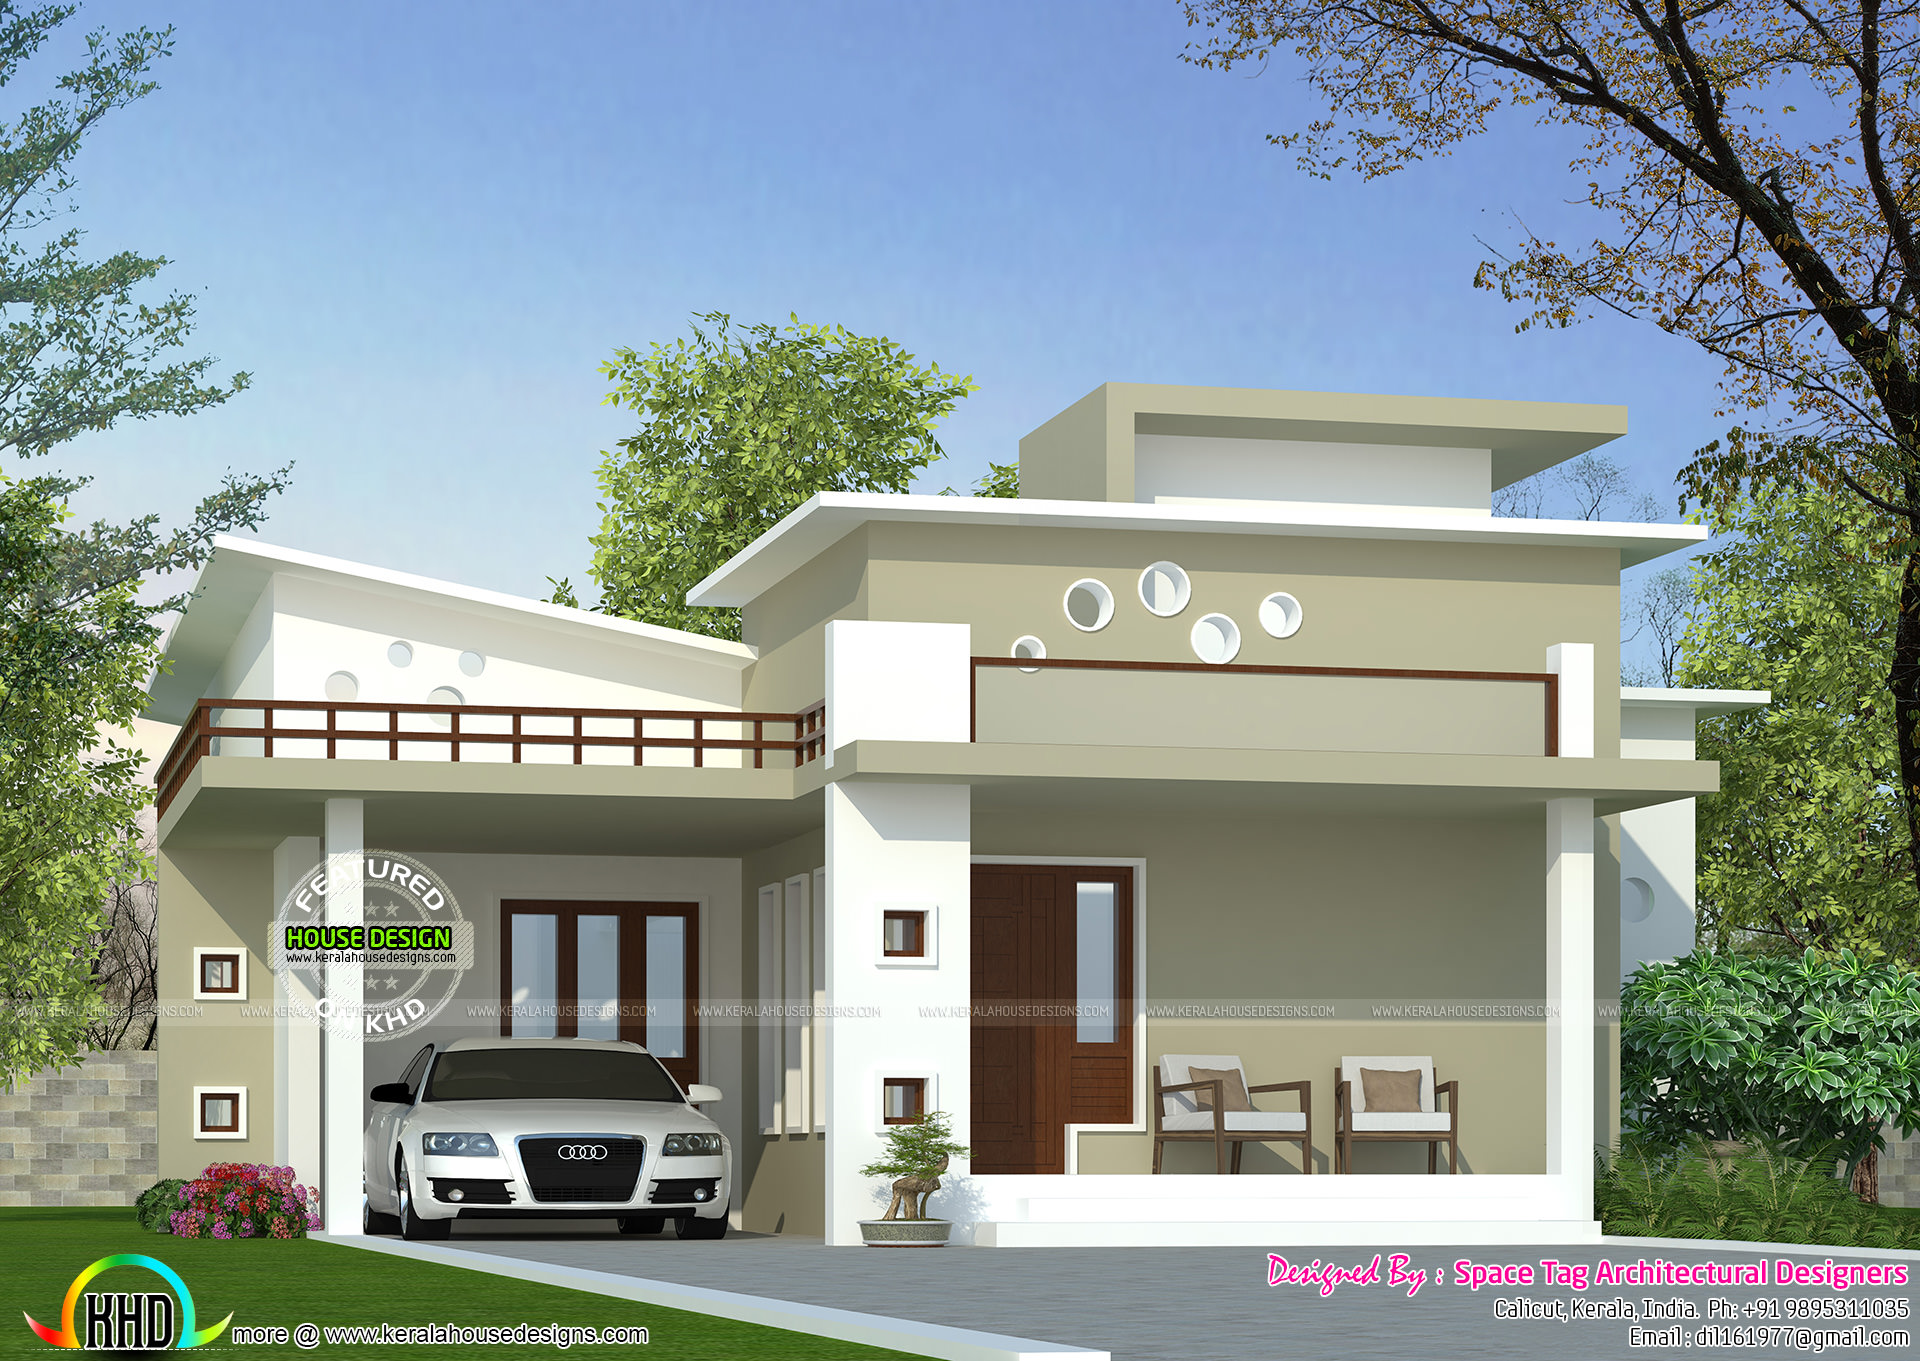 Genial Low Cost Kerala Home Design